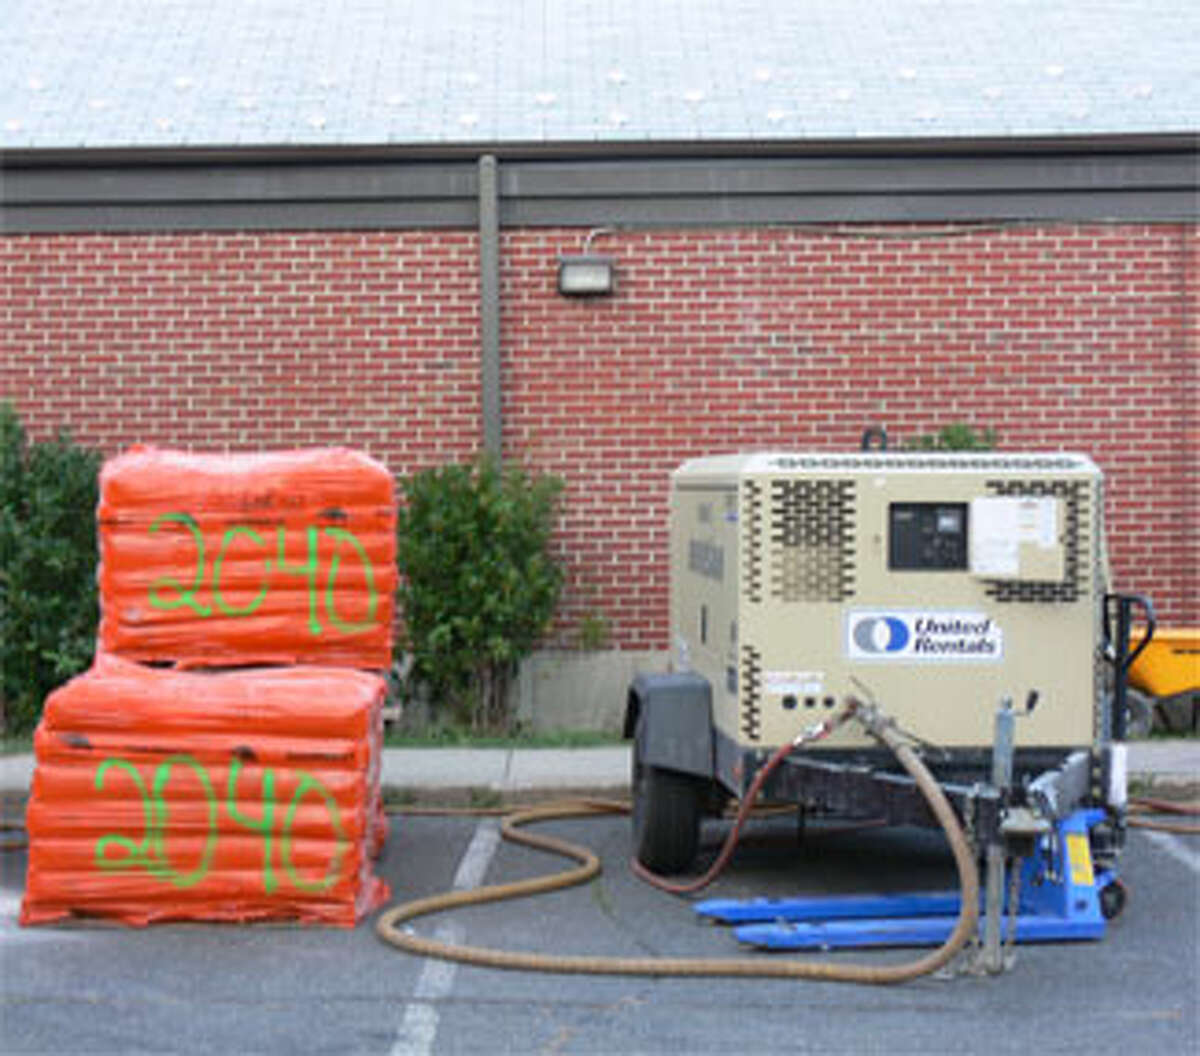 Equipment being used during renovation work at the Shelton Community Center swimming pool.